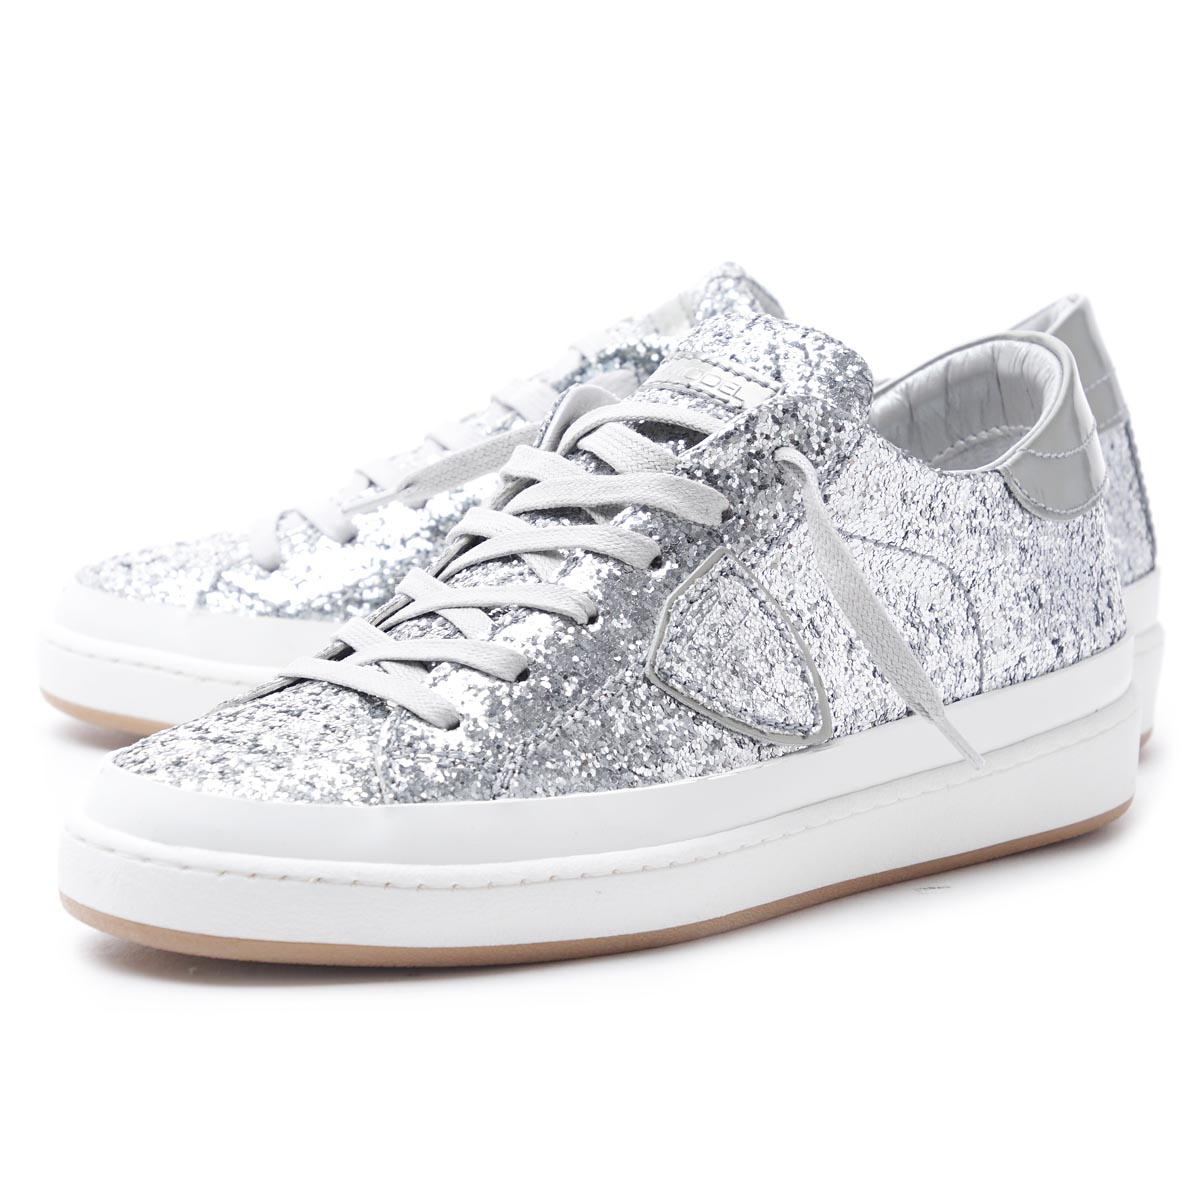 Philippe model Glitter detail sneakers